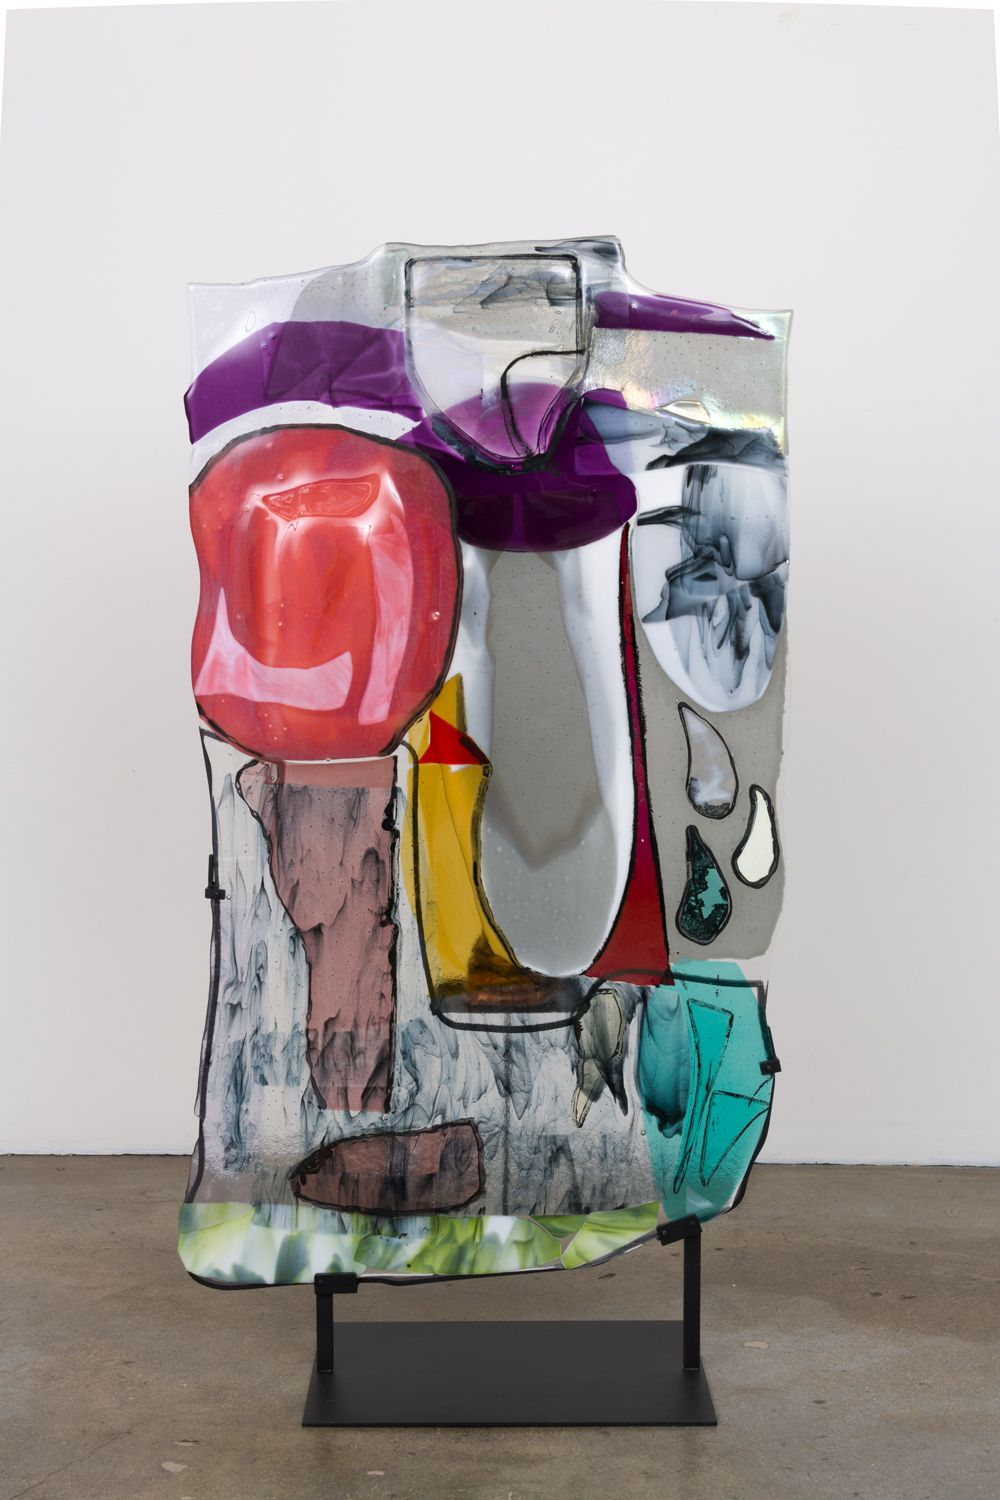 a glass, ceramic and steel sculpture by jessica jackson hutchins in a contemporary art gallery